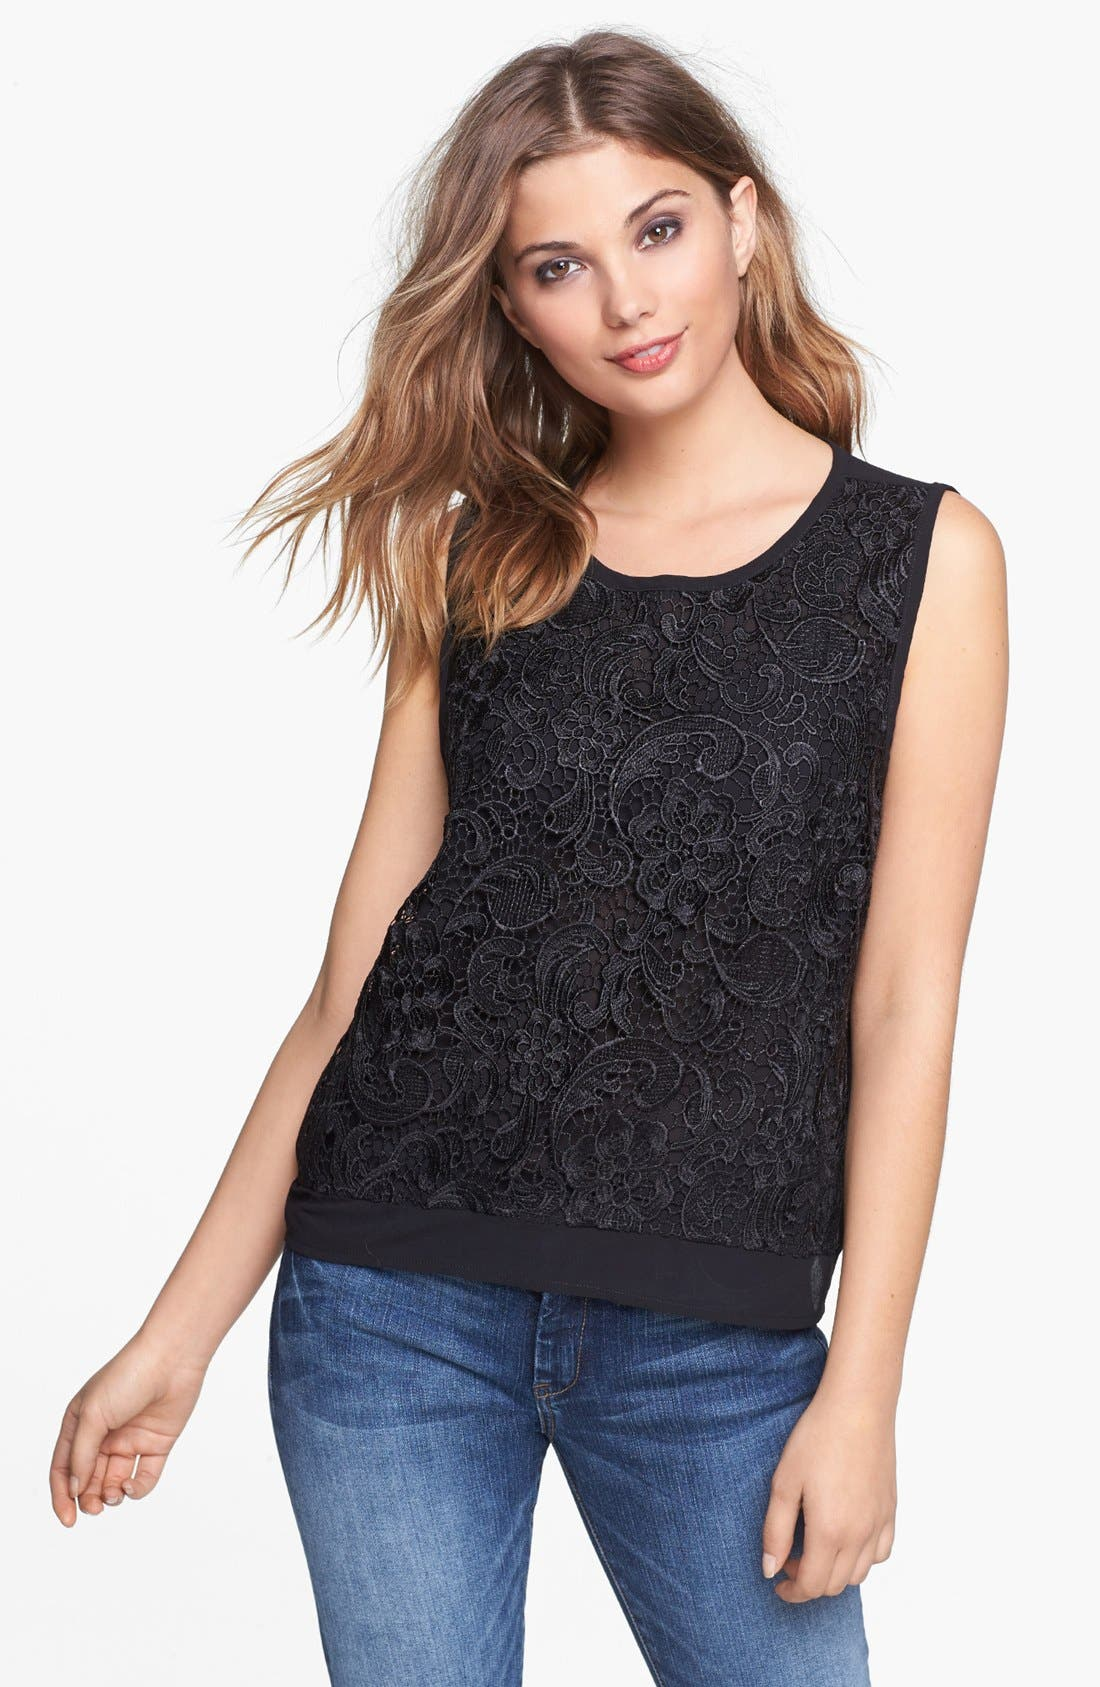 Alternate Image 1 Selected - ASTR Lace Chiffon Tank